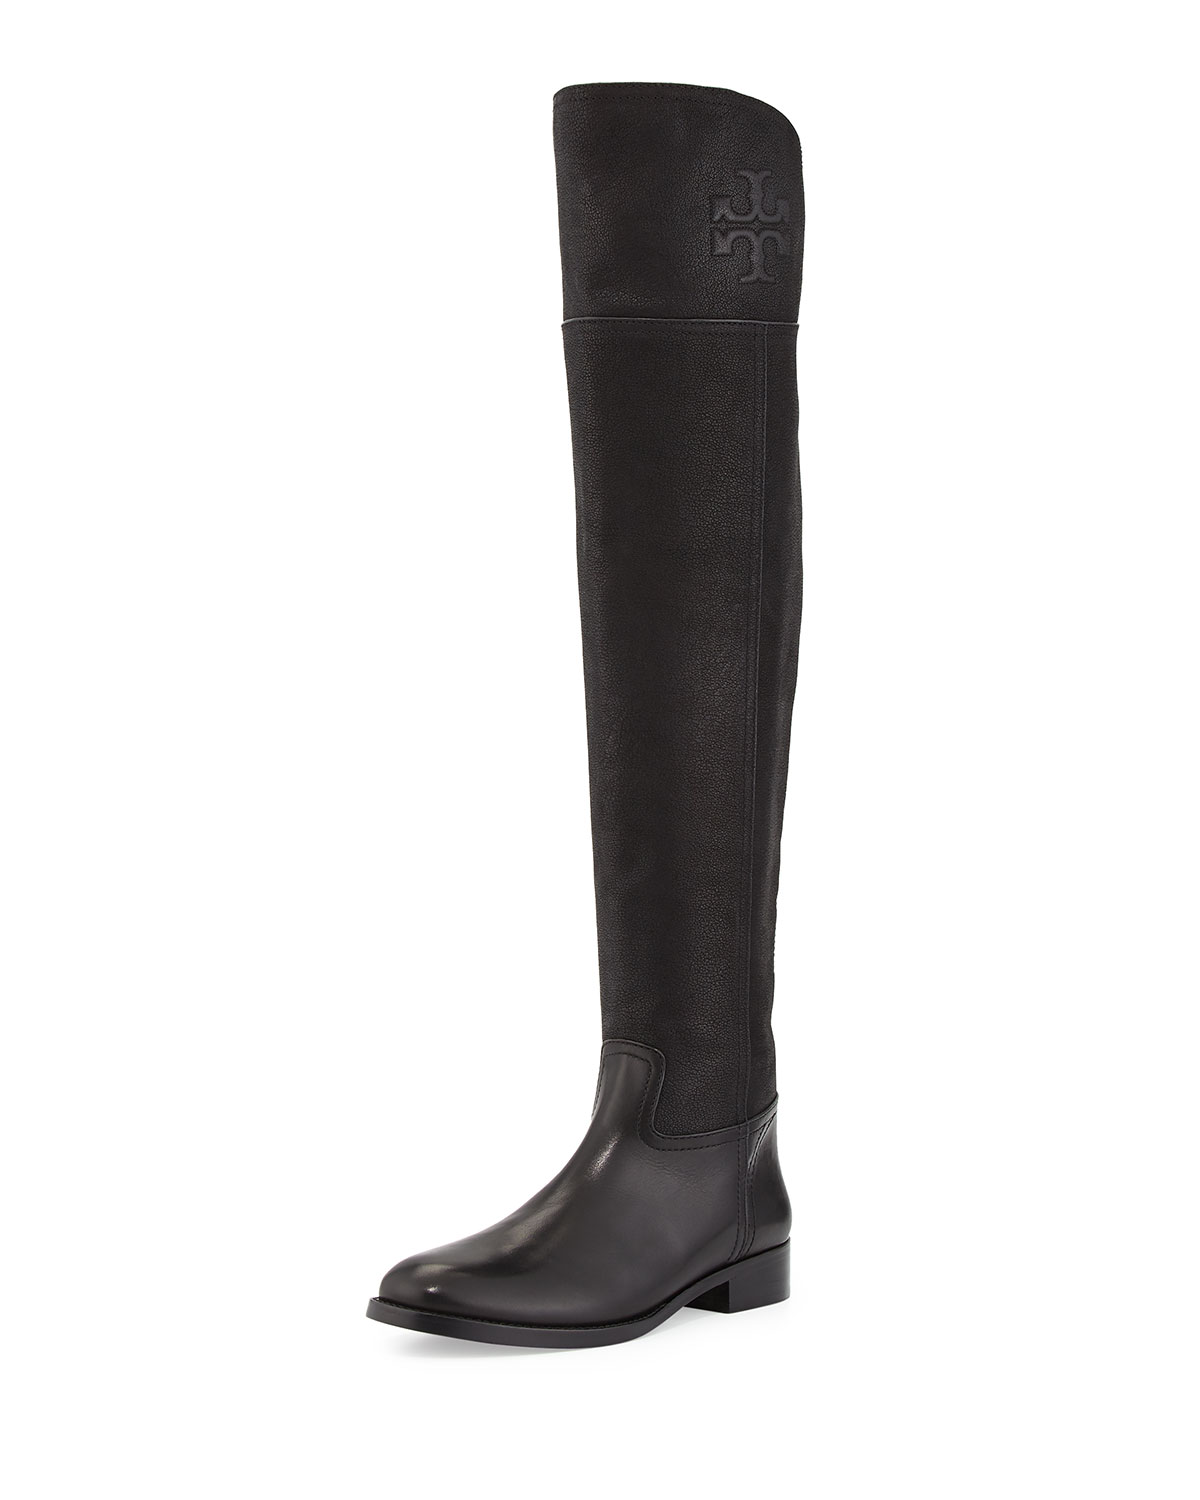 a01e47212b60 Tory Burch Simone Over-the-Knee Leather Boot